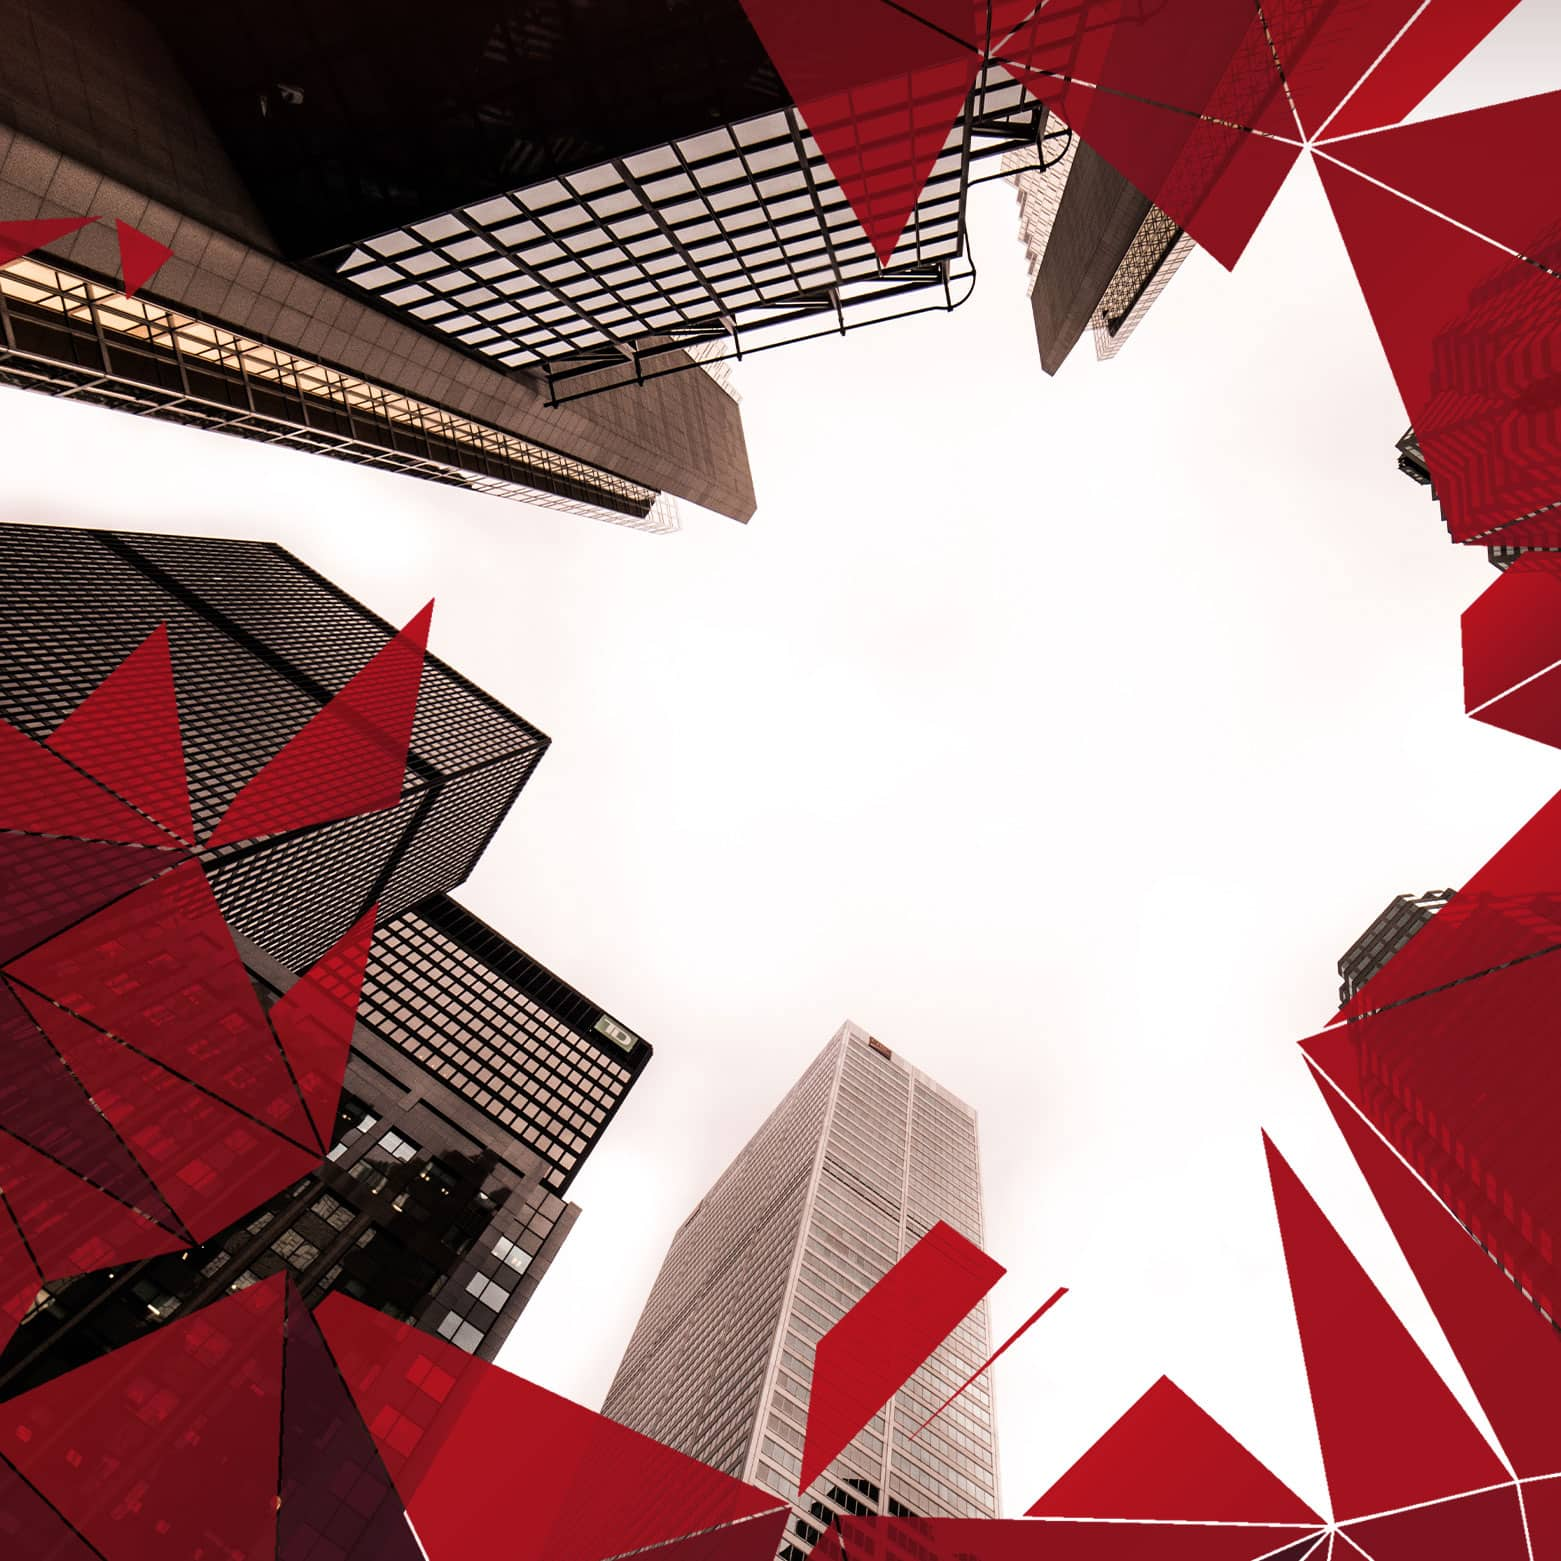 Image of tall urban buildings branded with OFIFC shapes overlay